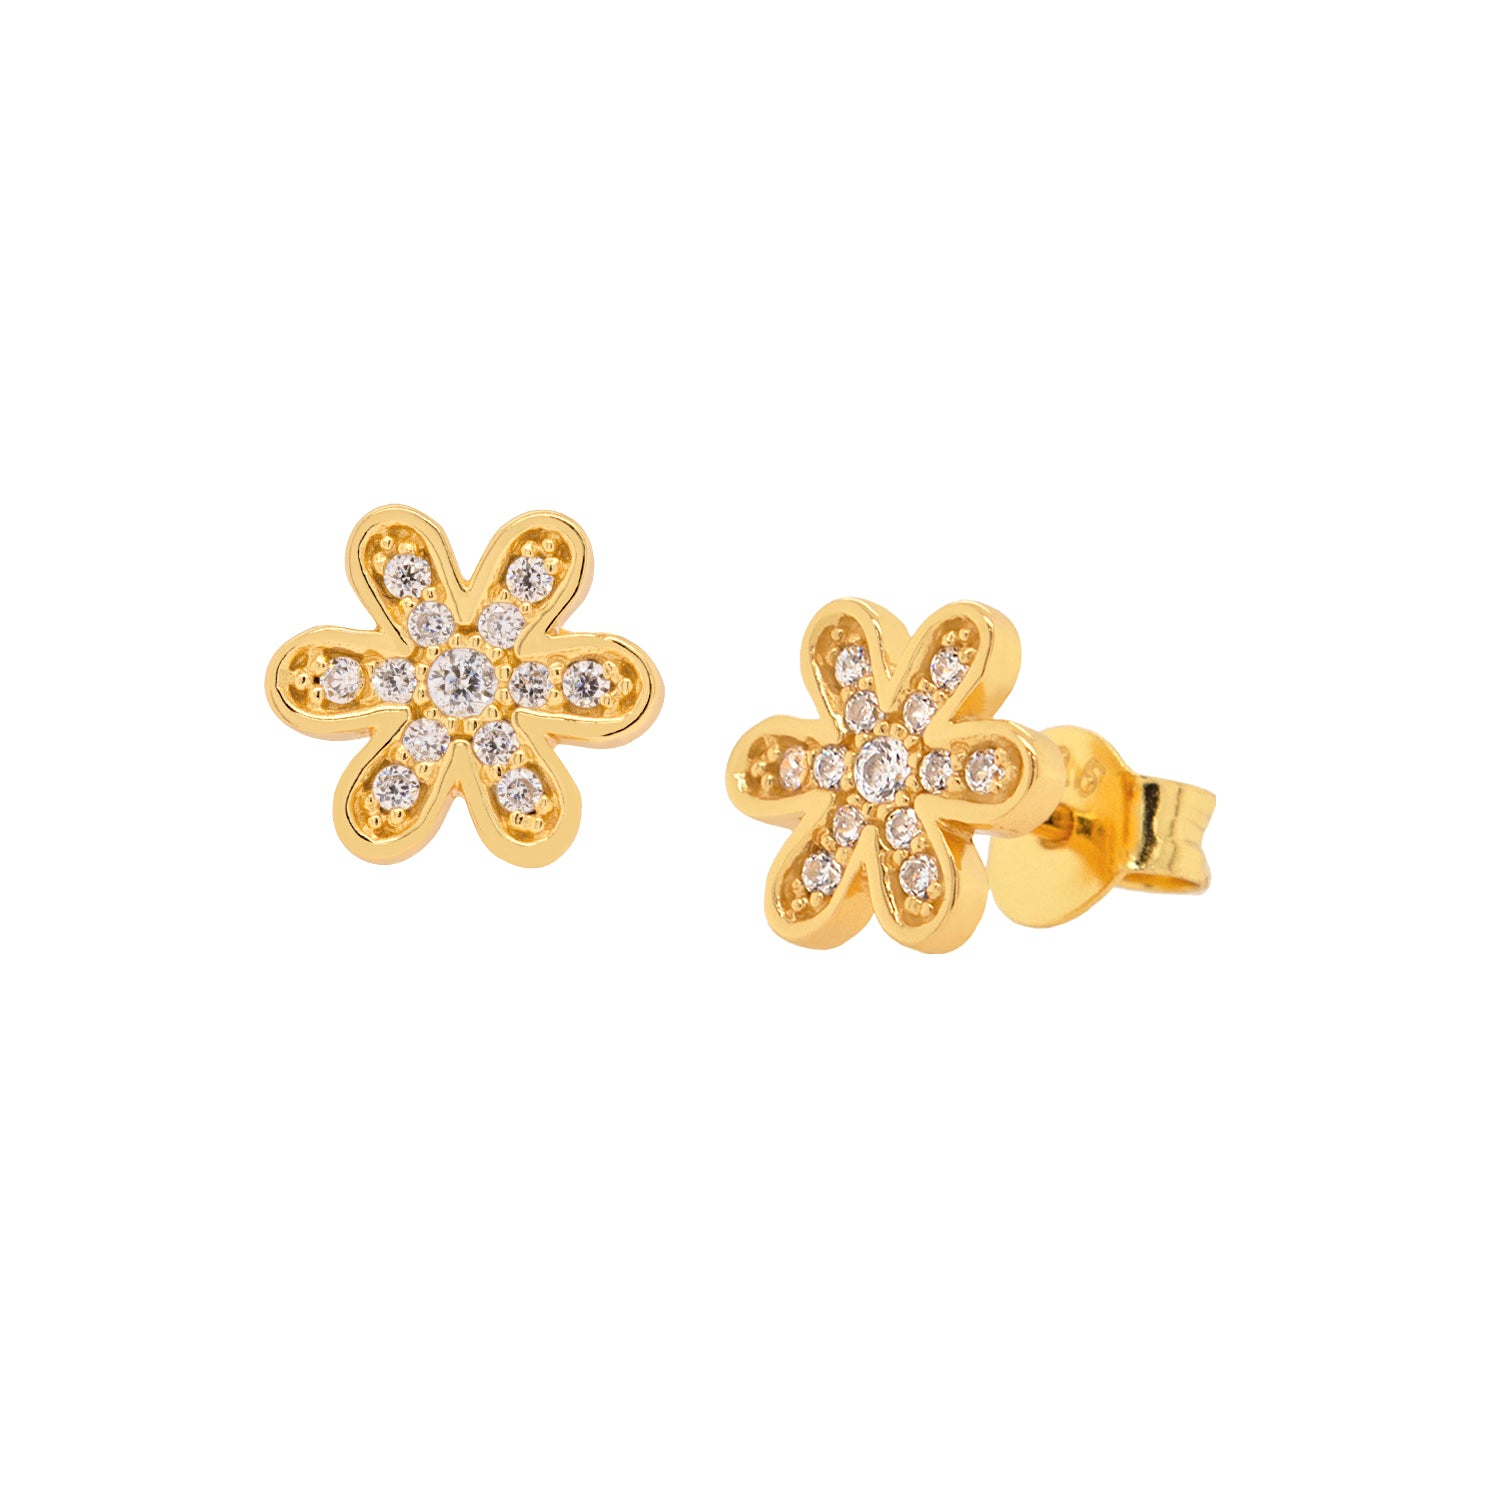 Pave Daisy Stud Earrings